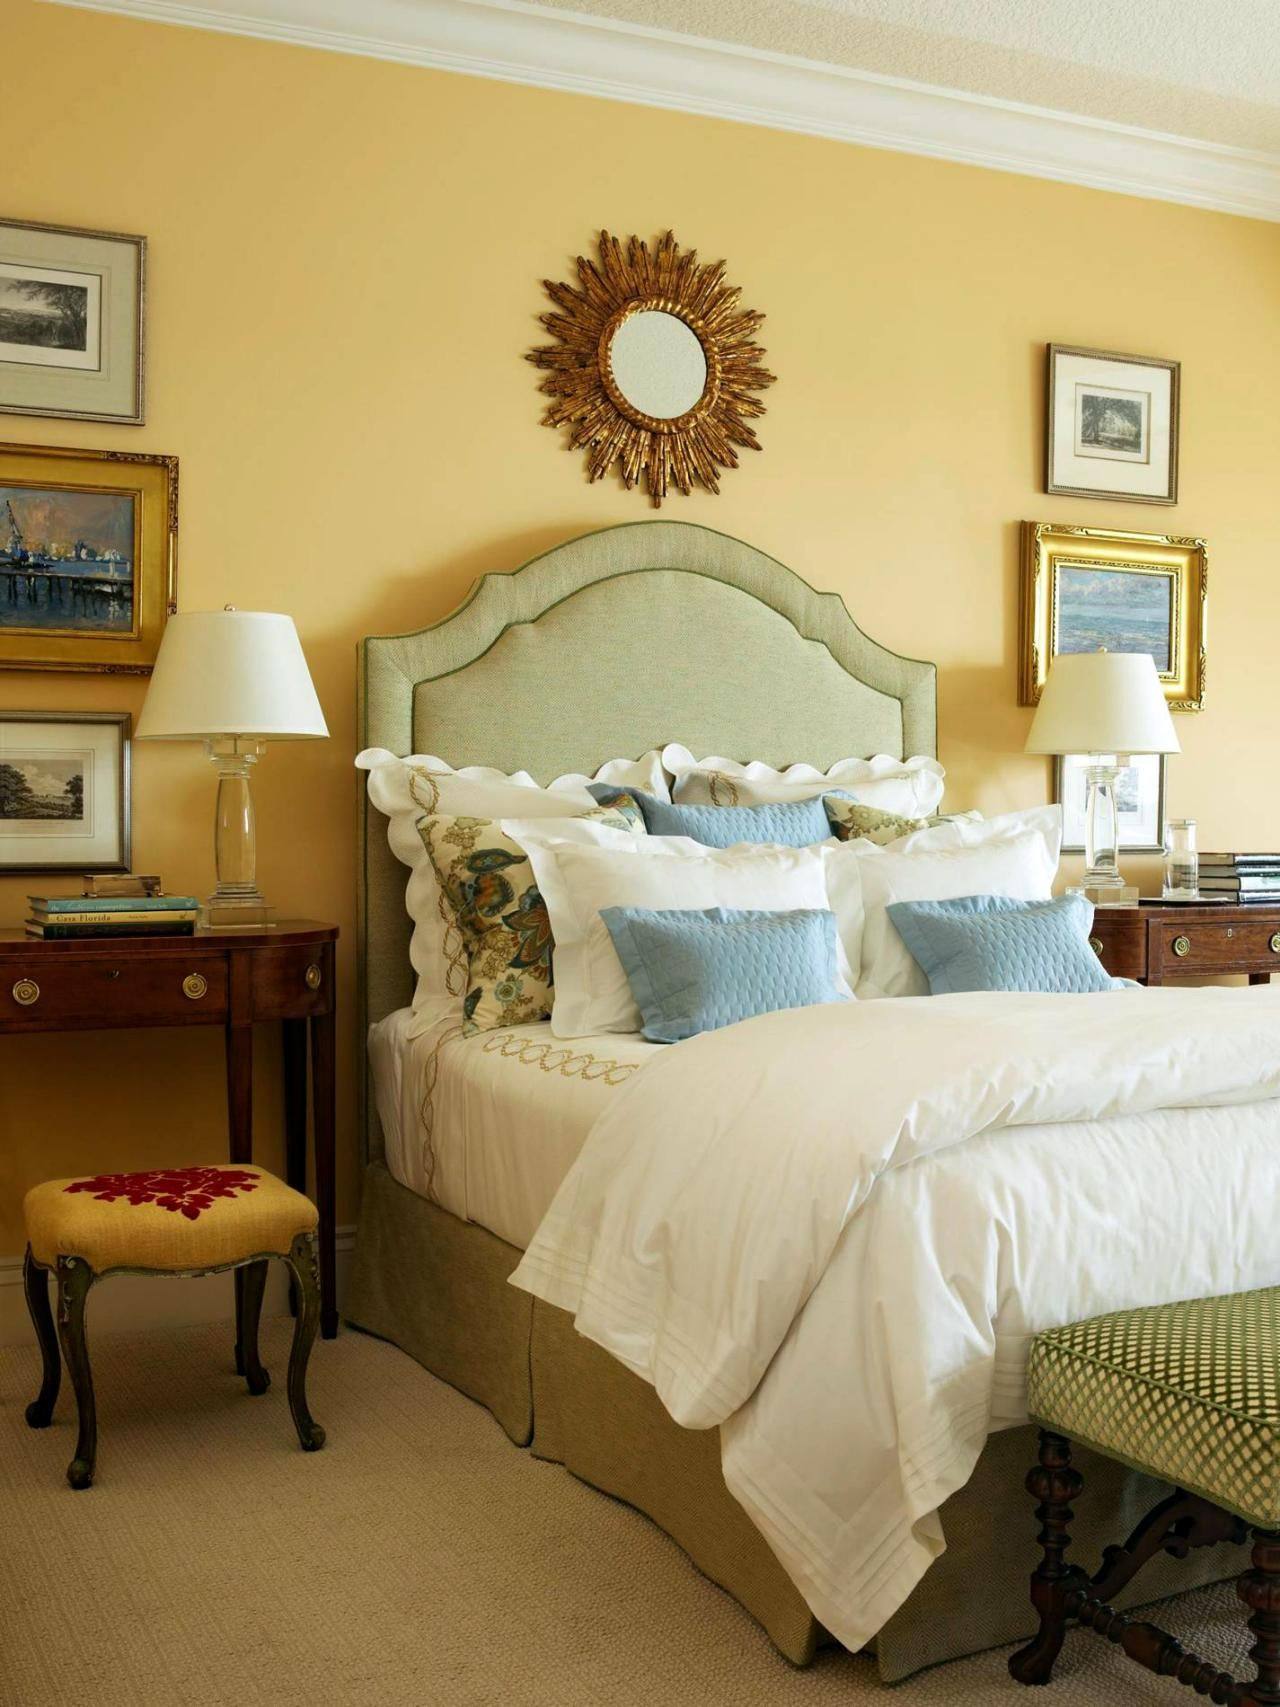 Guest Bedroom Design Ideas | Pinterest | Remodeling ideas, Hgtv and ...